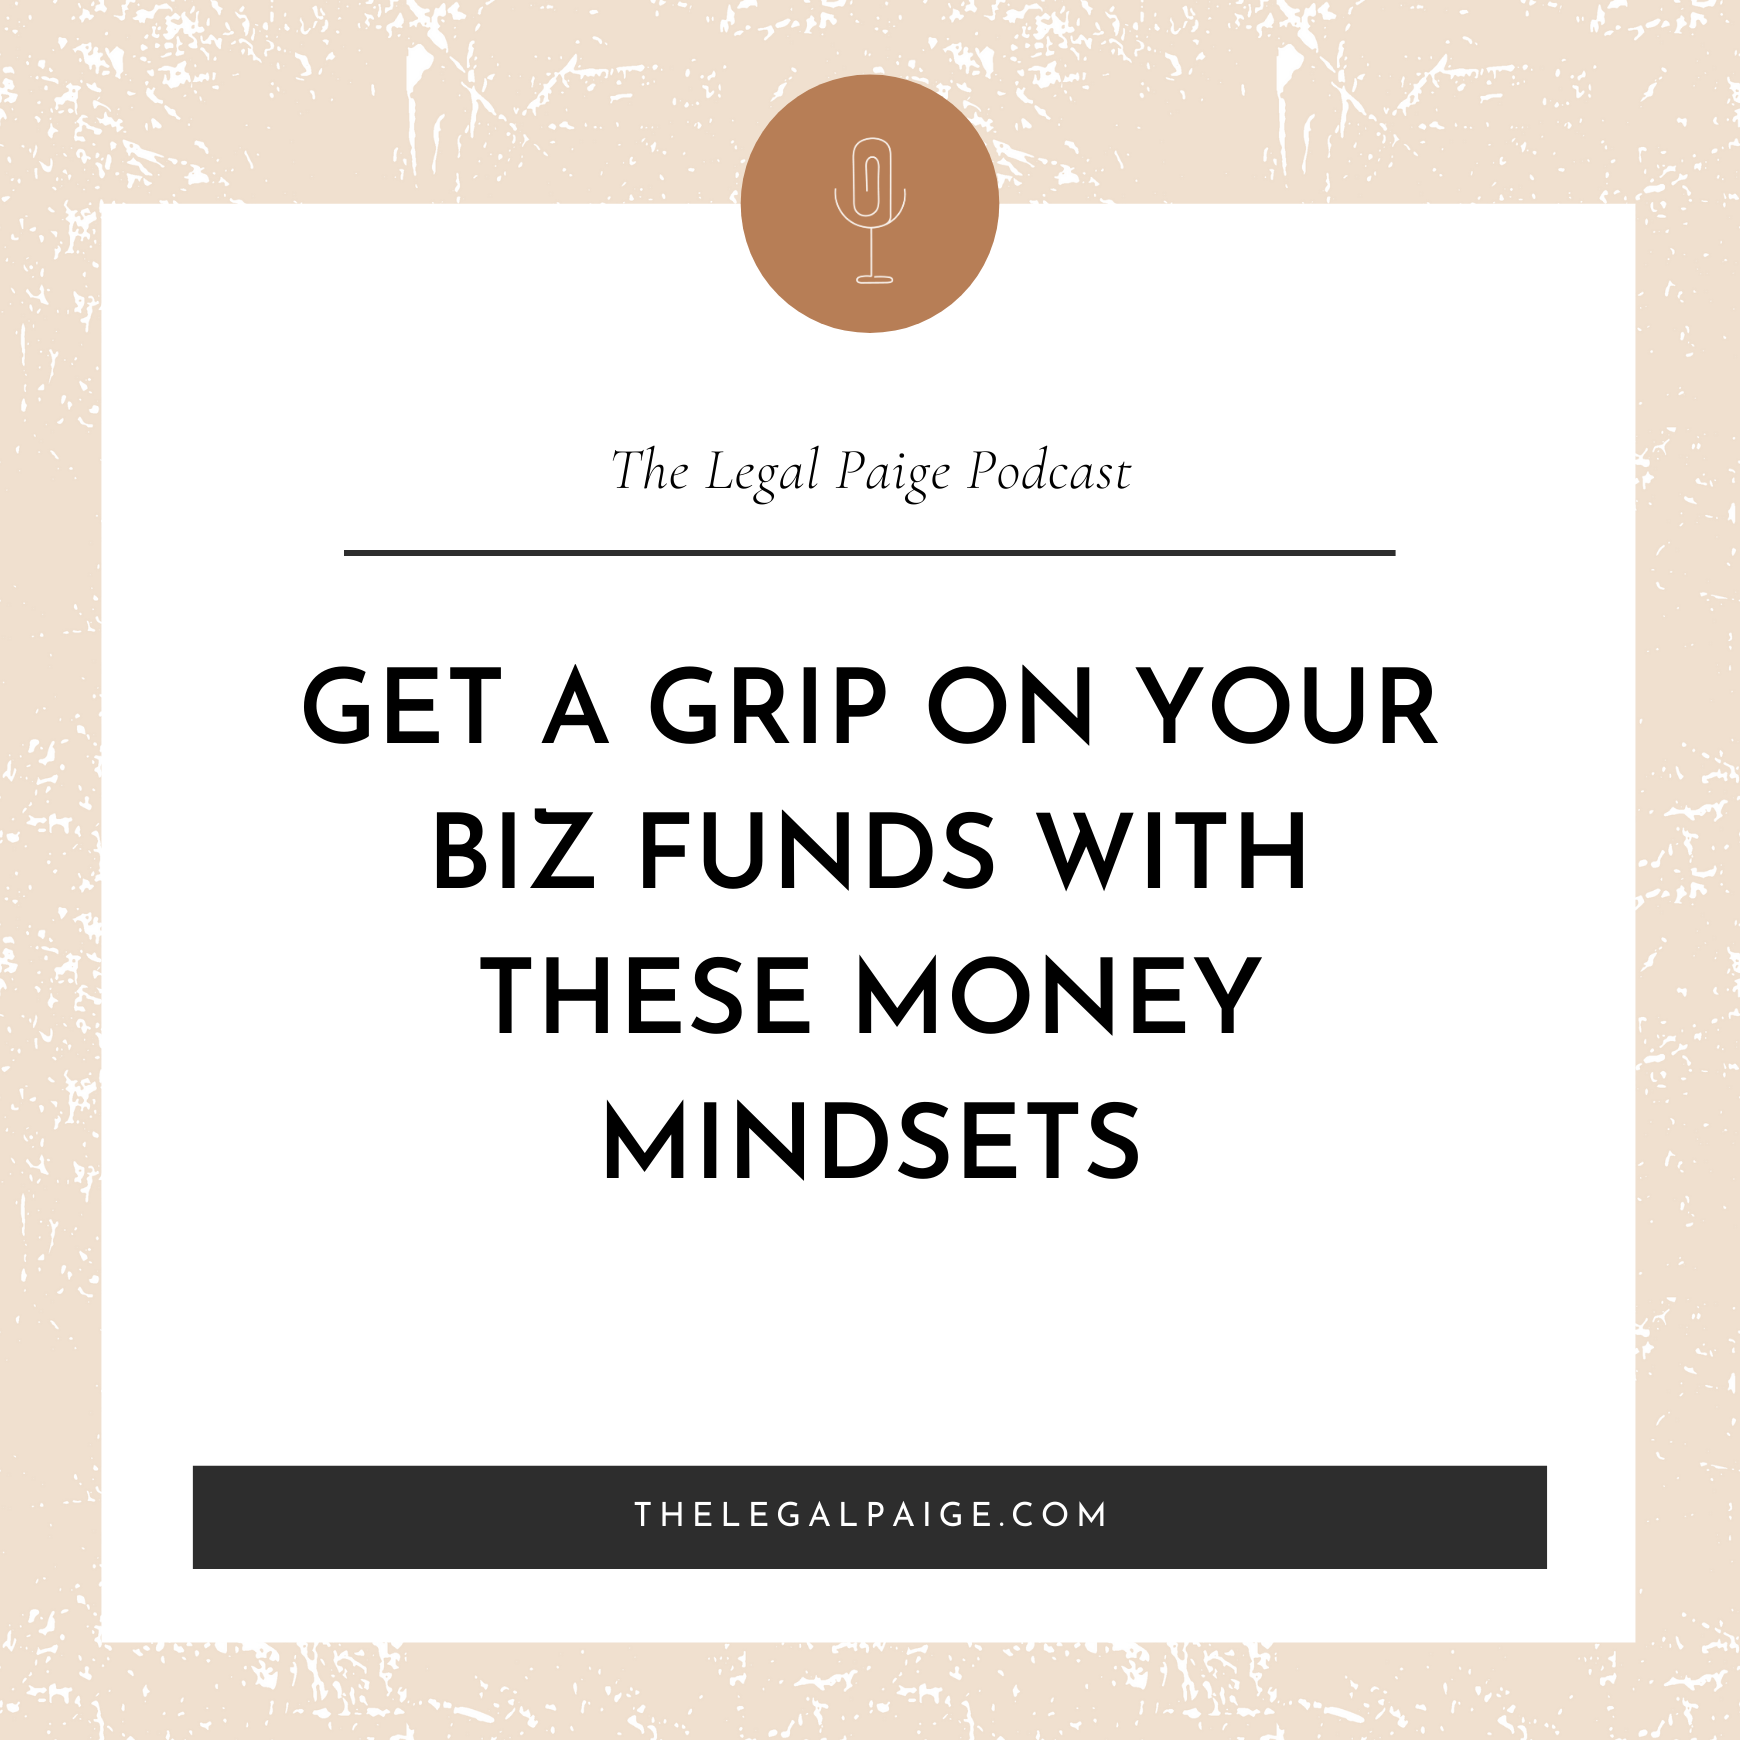 Get a grip on your biz funds with these money mindsets